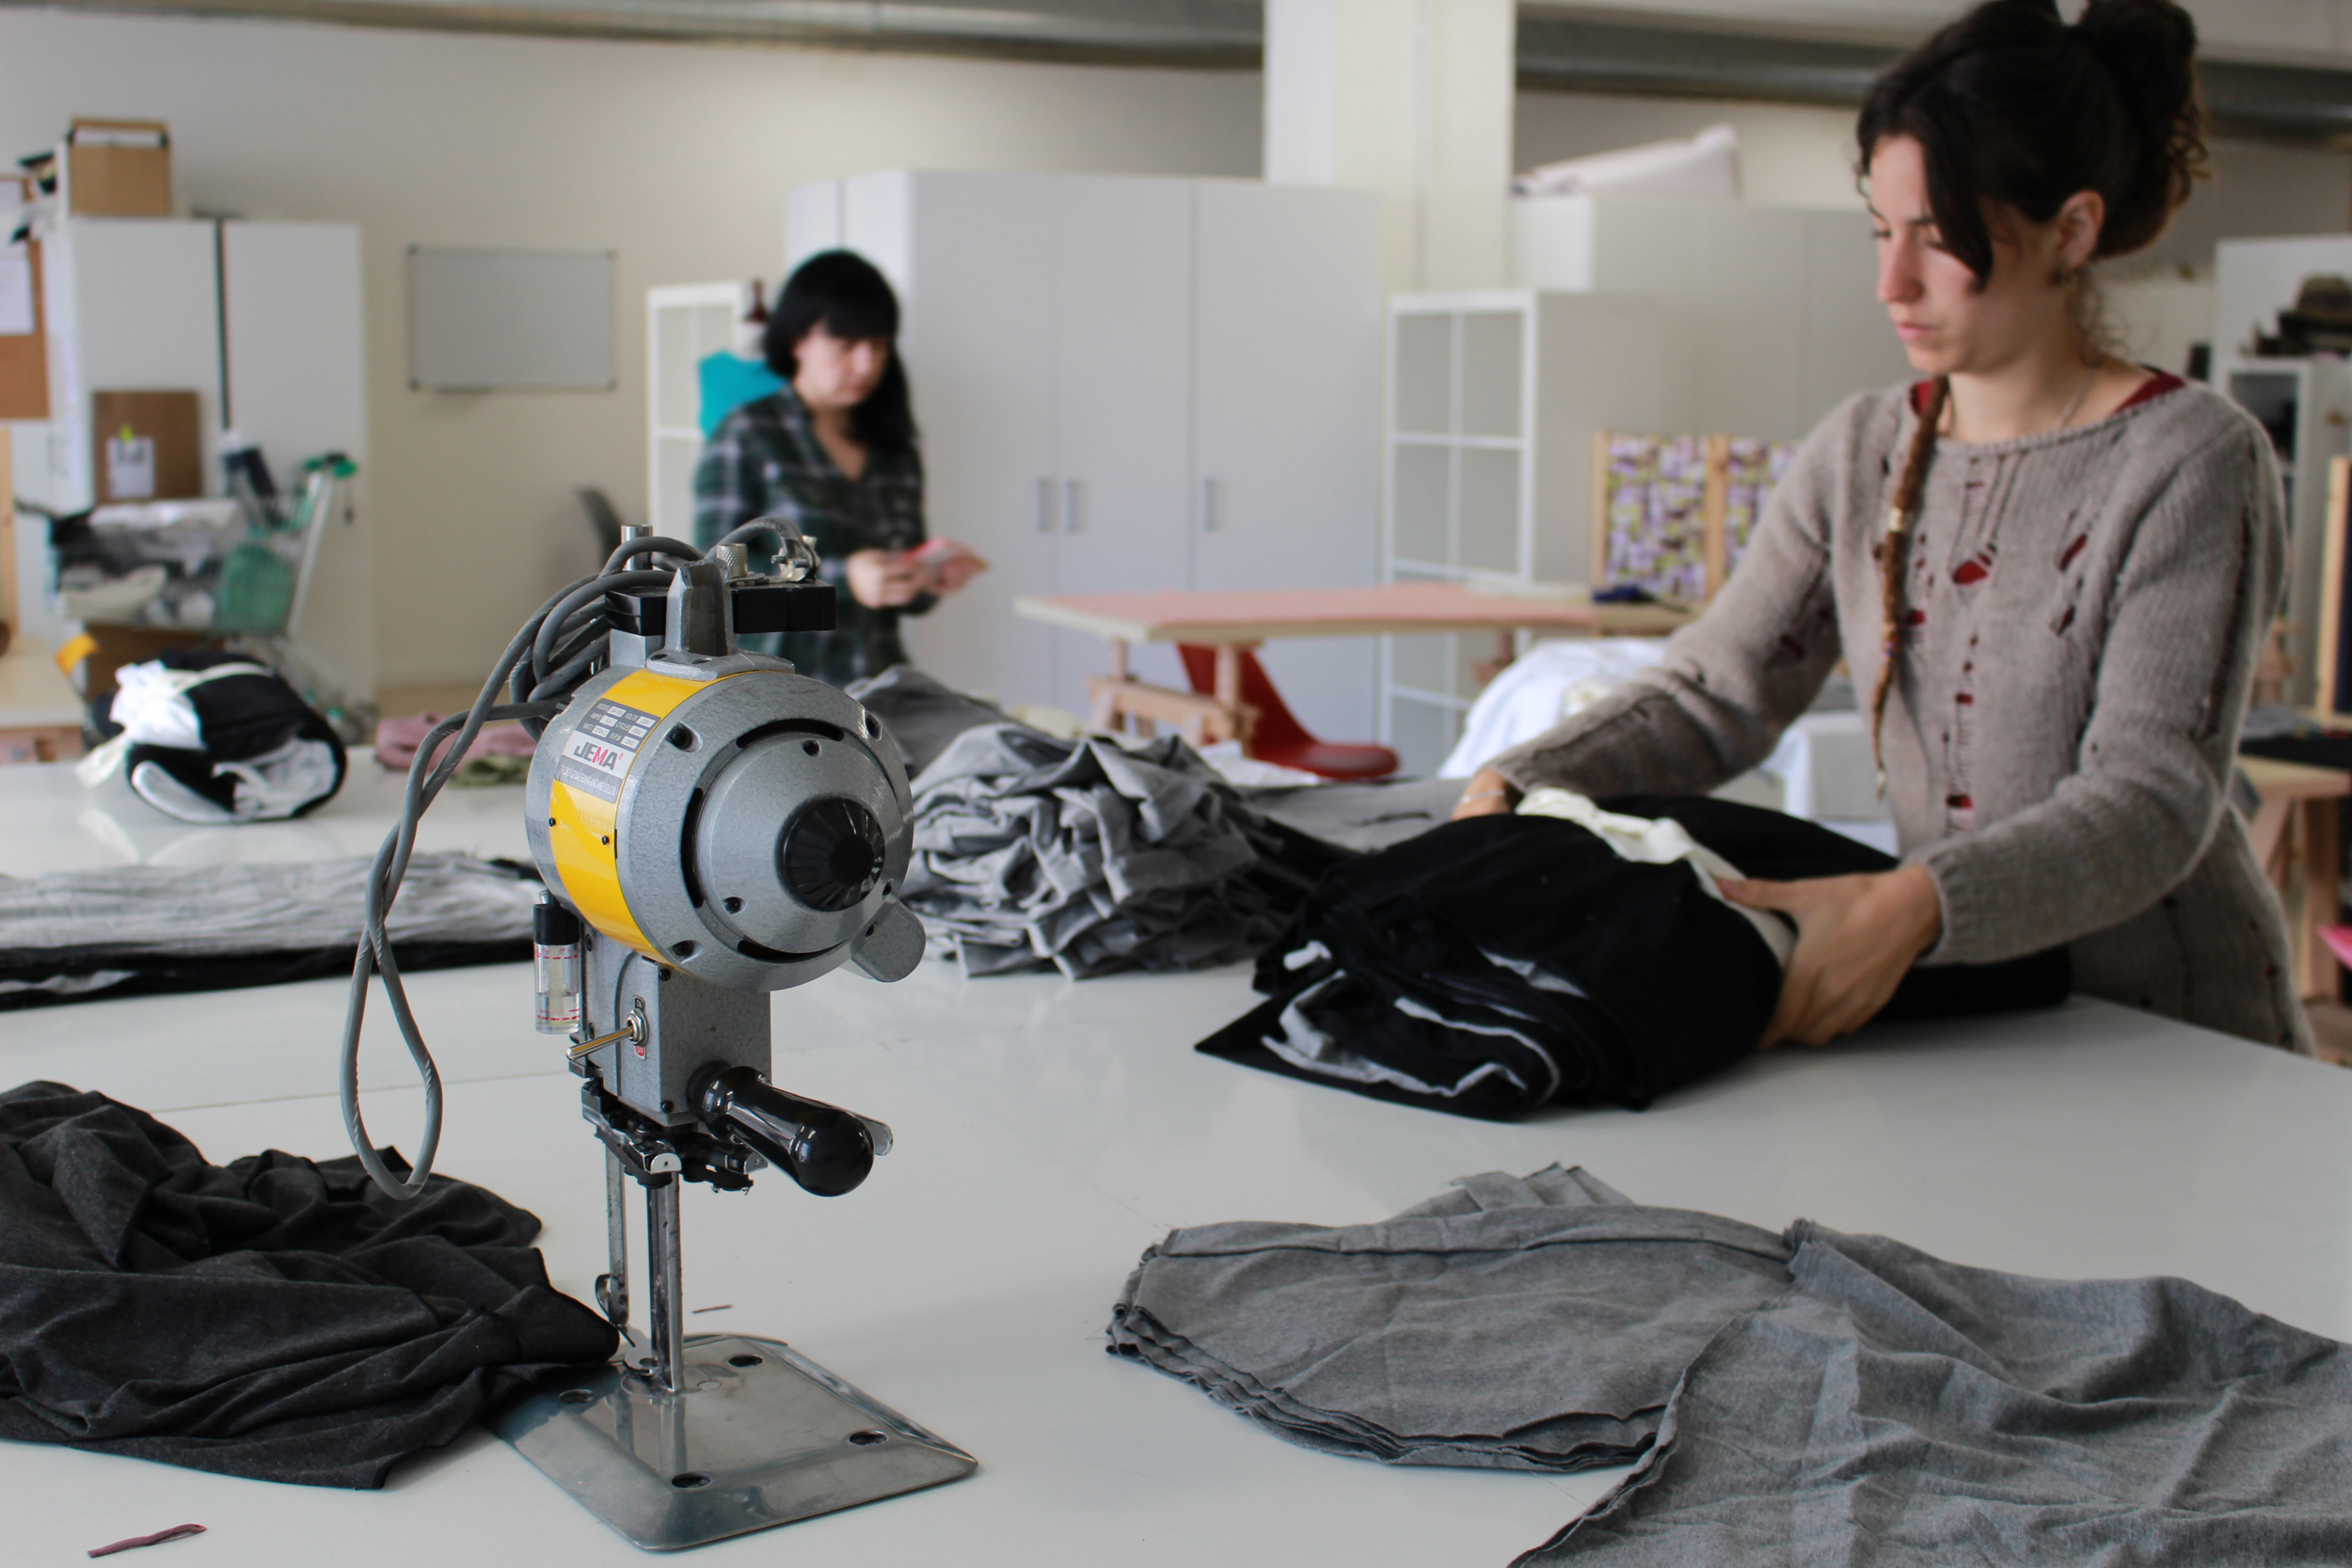 Sewing machines are available to assemble your own prototypes